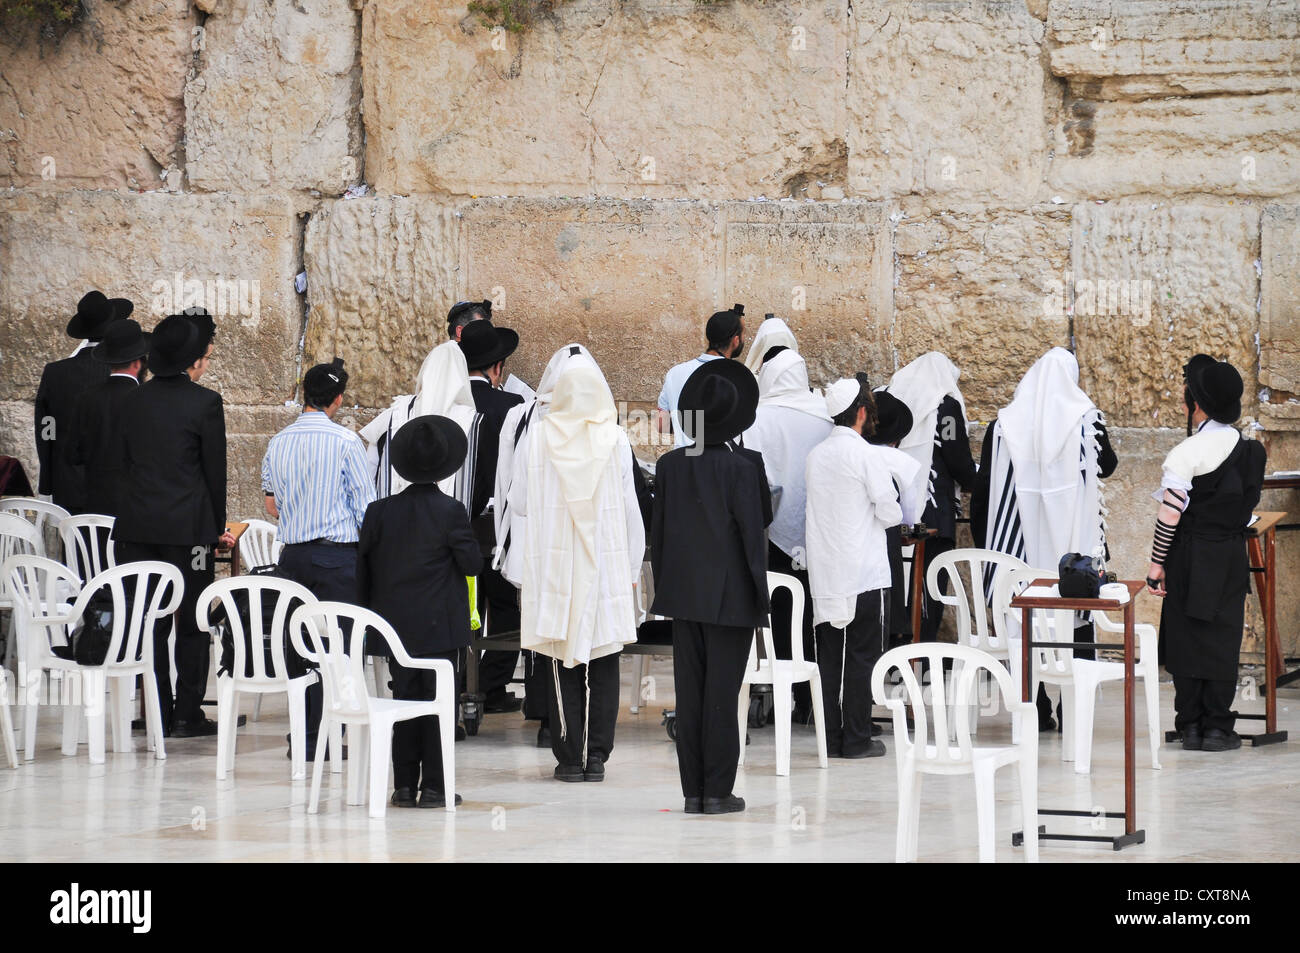 Jewish men praying, worshipers at the Wailing Wall, Jerusalem, Israel, Middle East, Southwest Asia - Stock Image